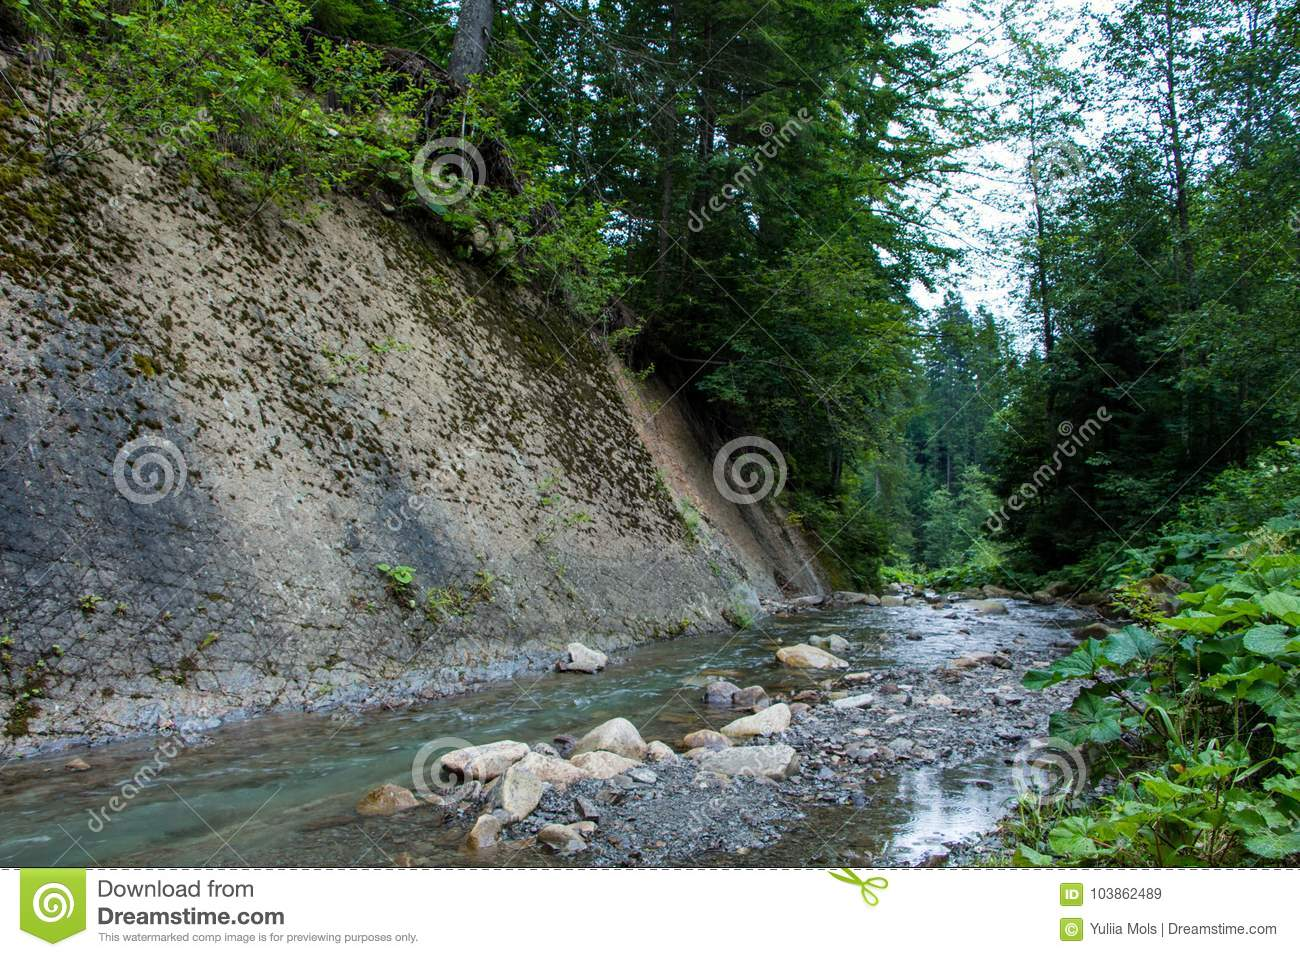 Landscapes Of The Mountains And Mountain River And Natural